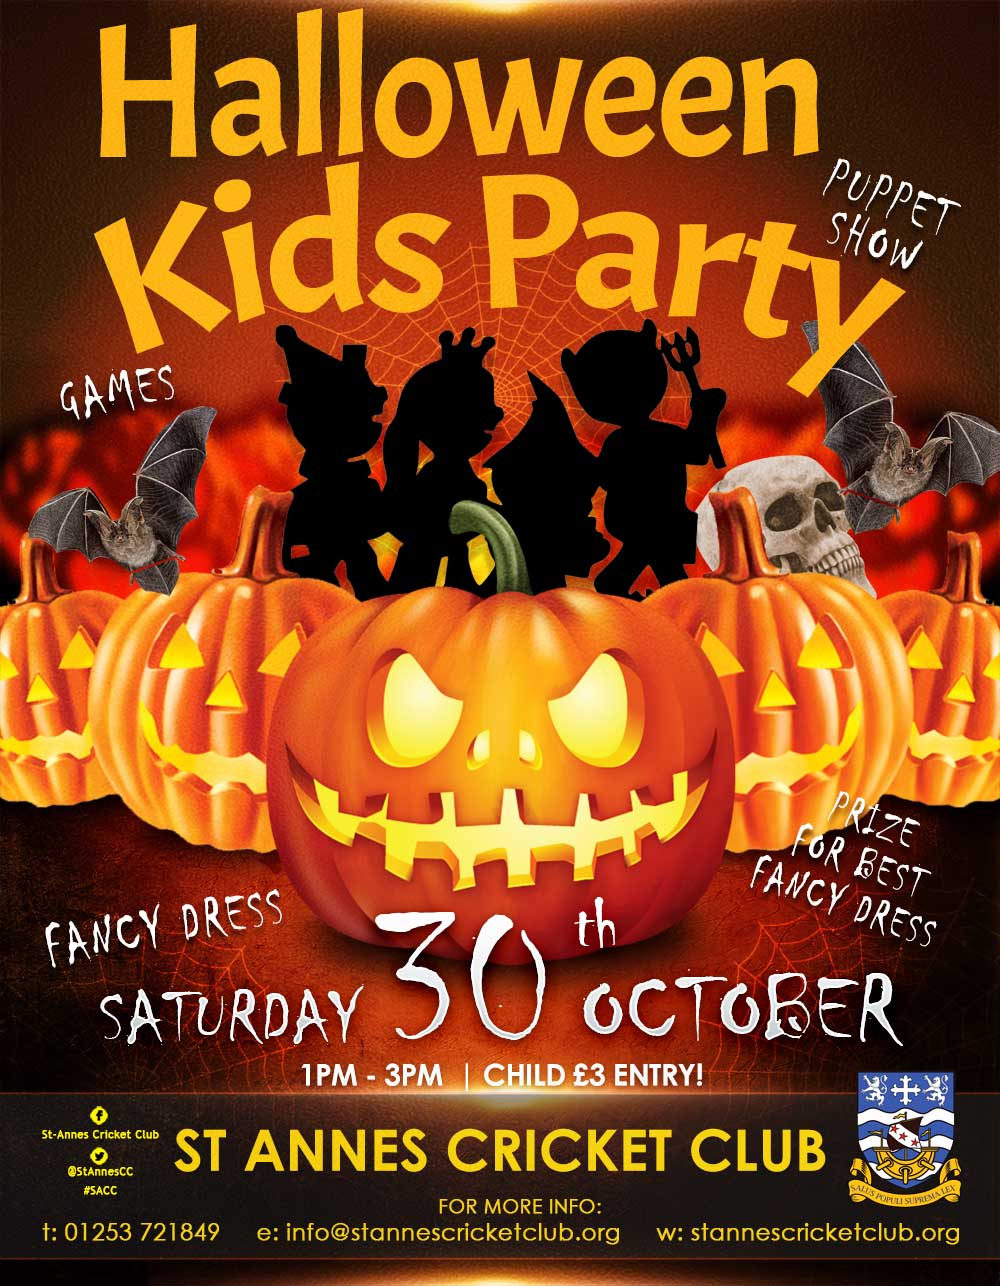 SPOOKY Halloween children's party games & puppet show at St Annes CC